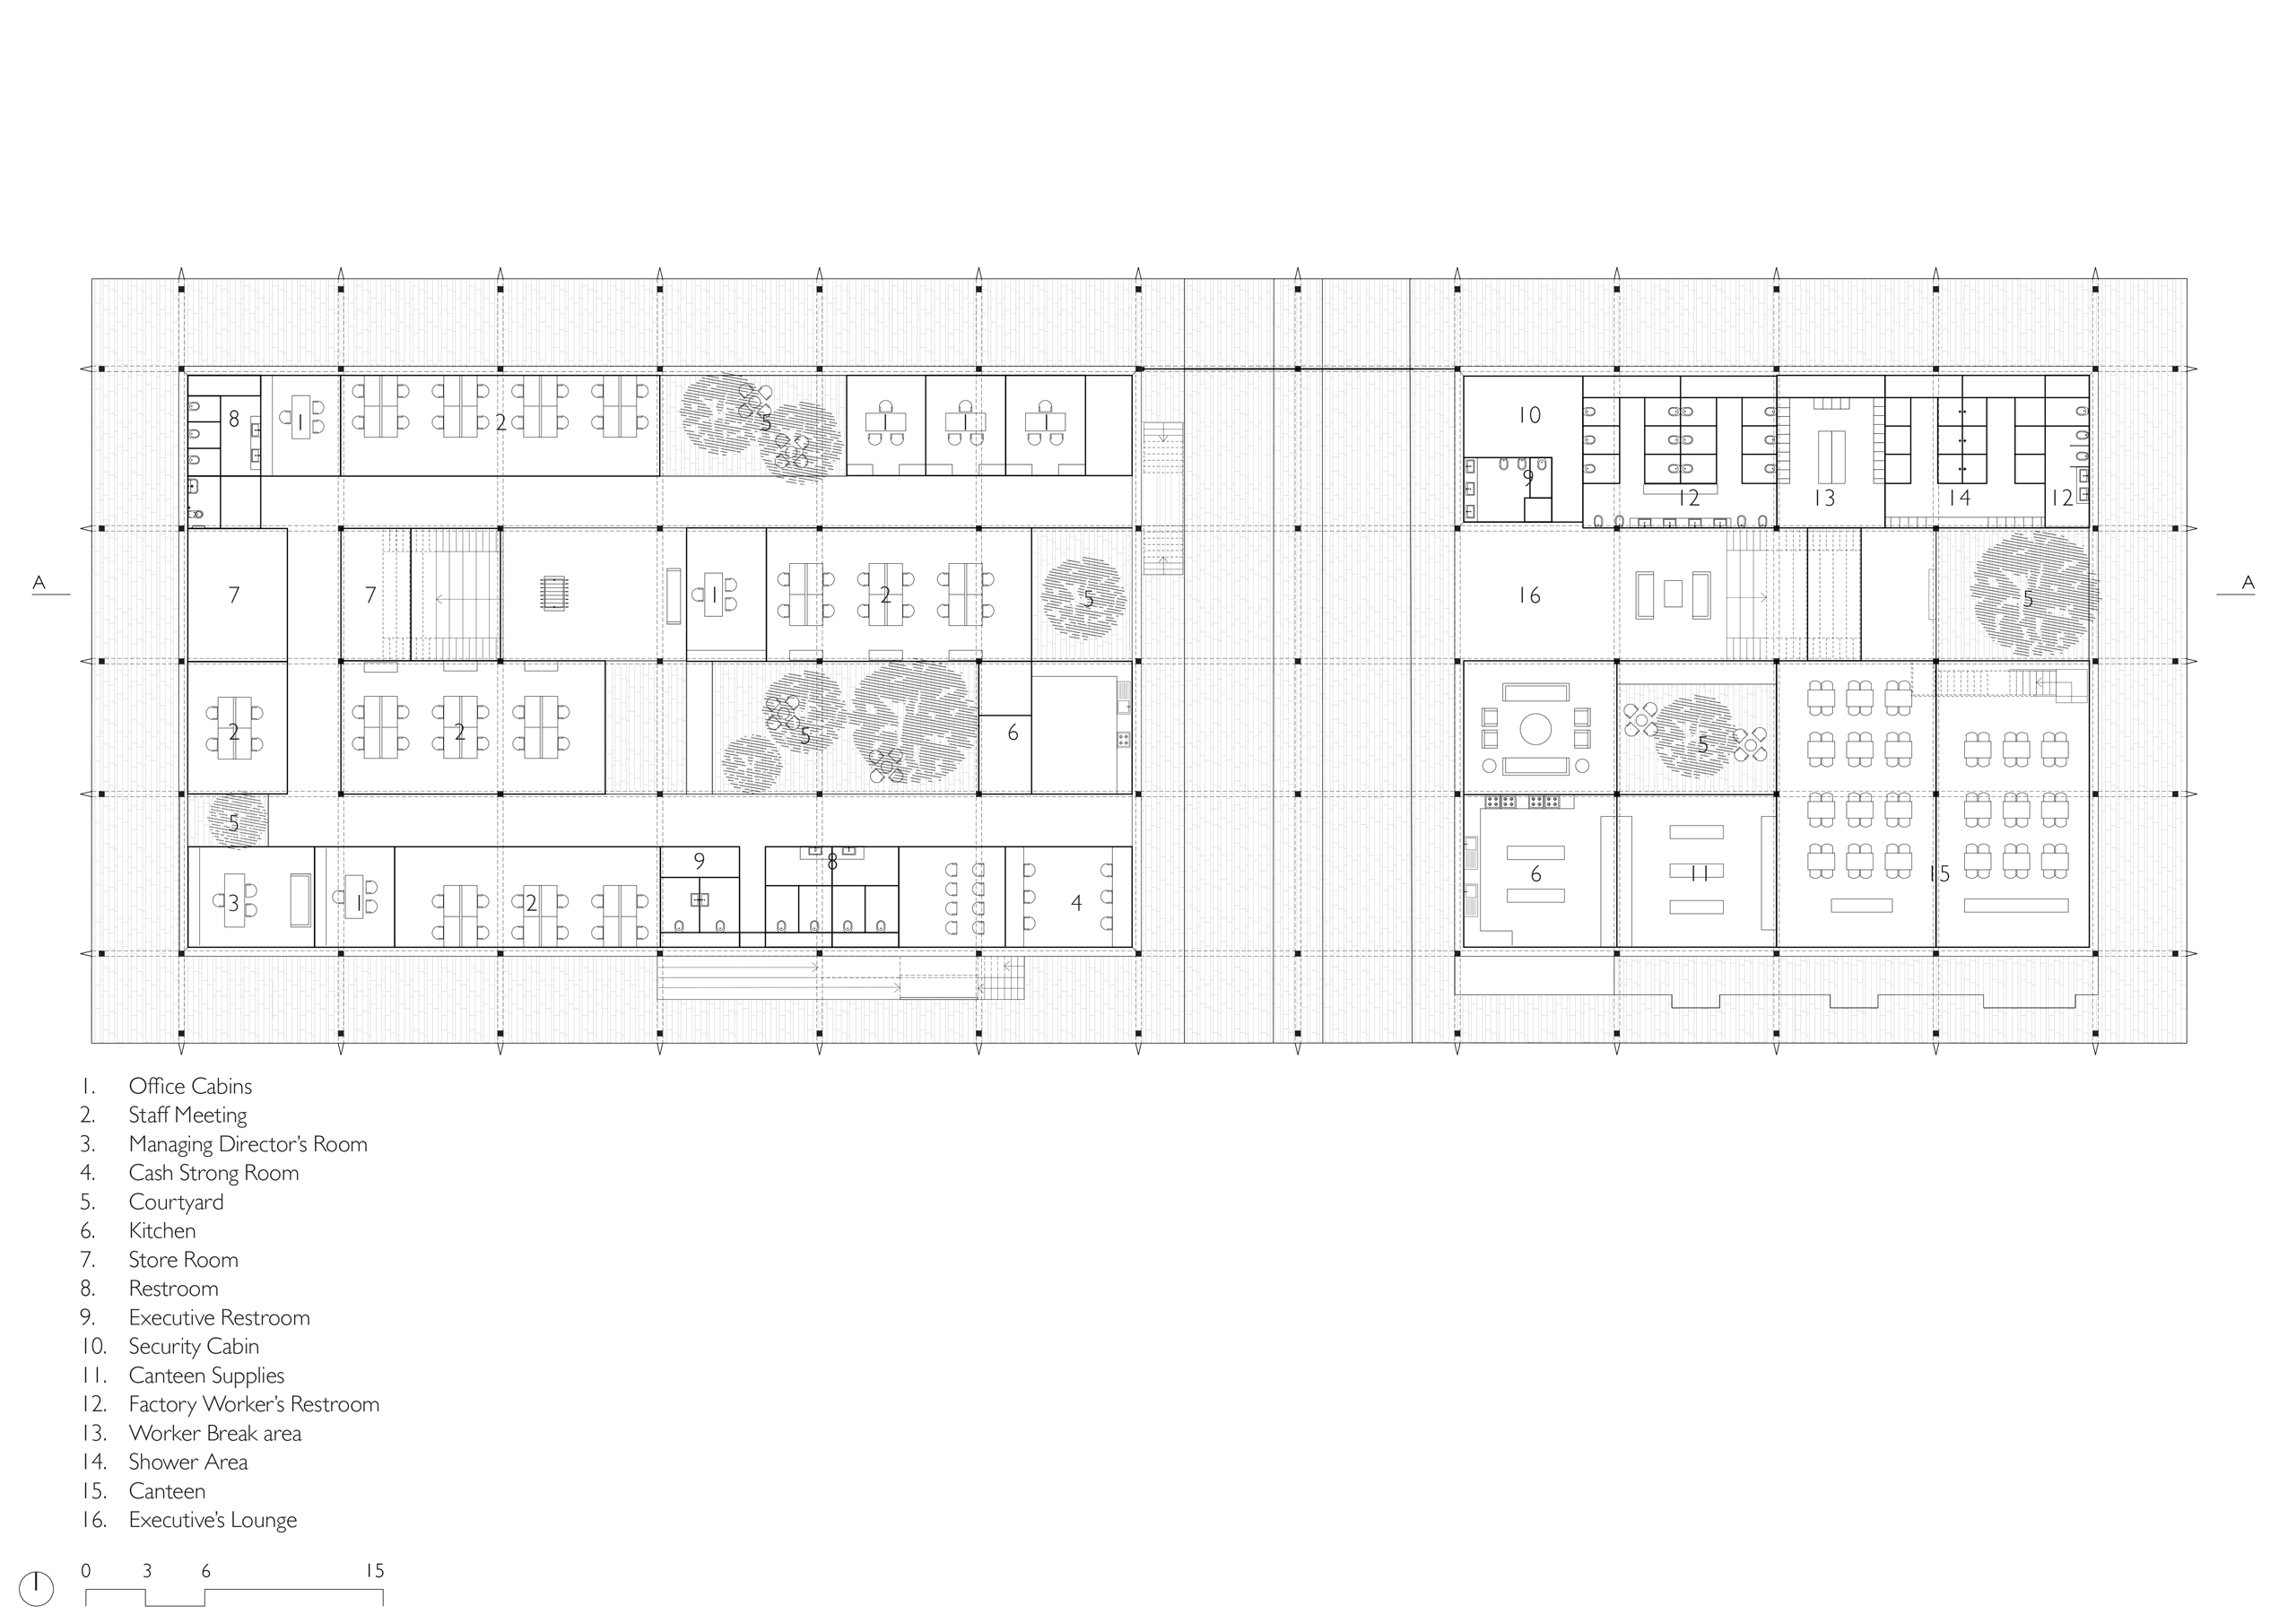 Lower Floor Plan of Administration Building in Latur, India